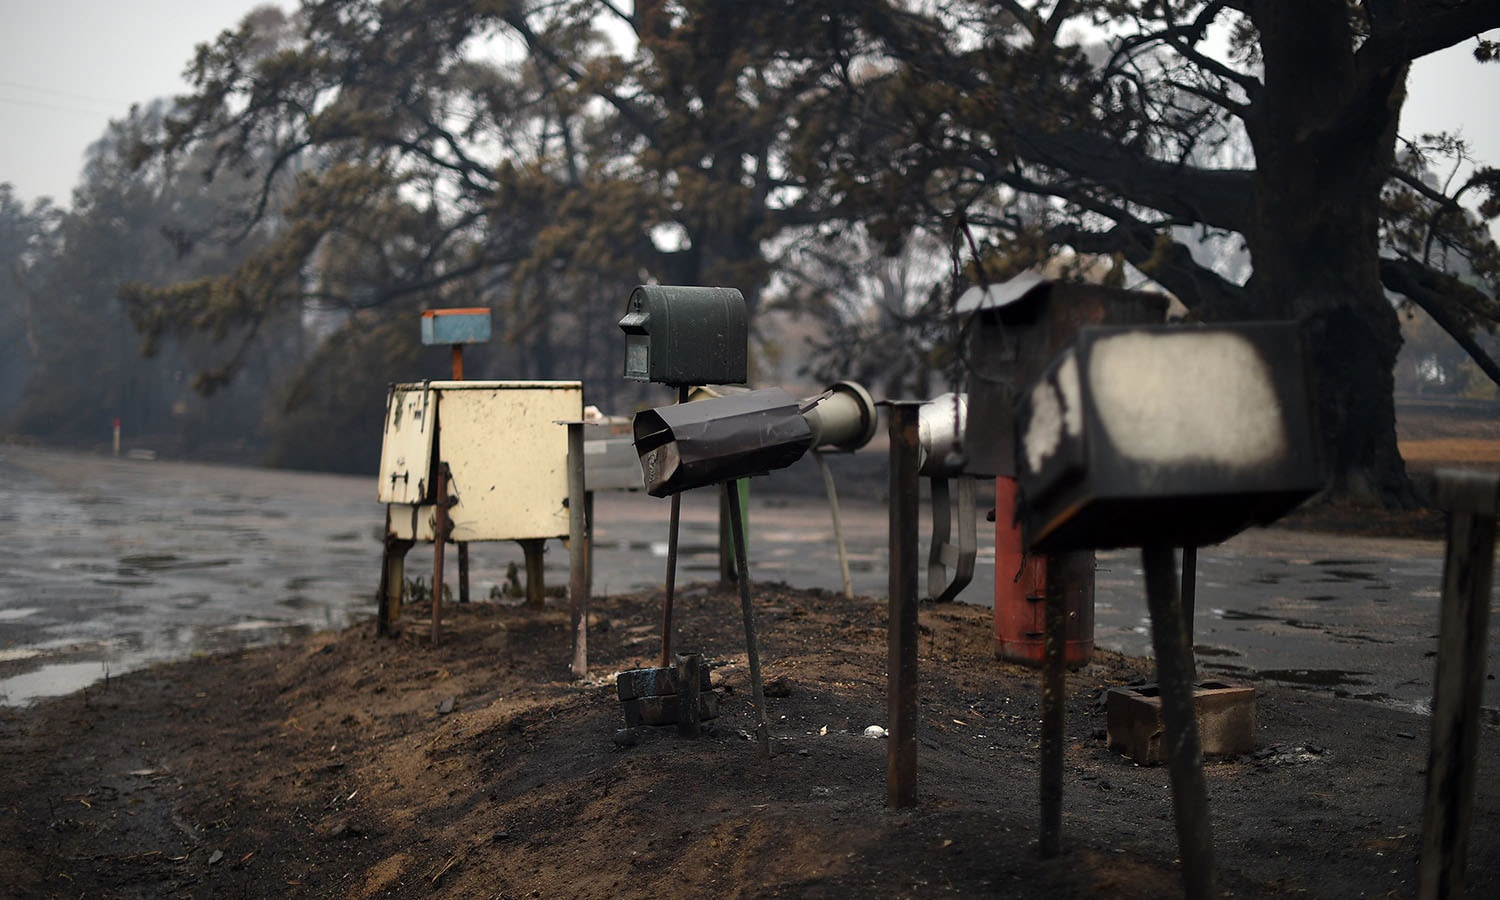 Burnt letter boxes are seen on Quinlans street after an overnight bushfire in Quaama. — AFP